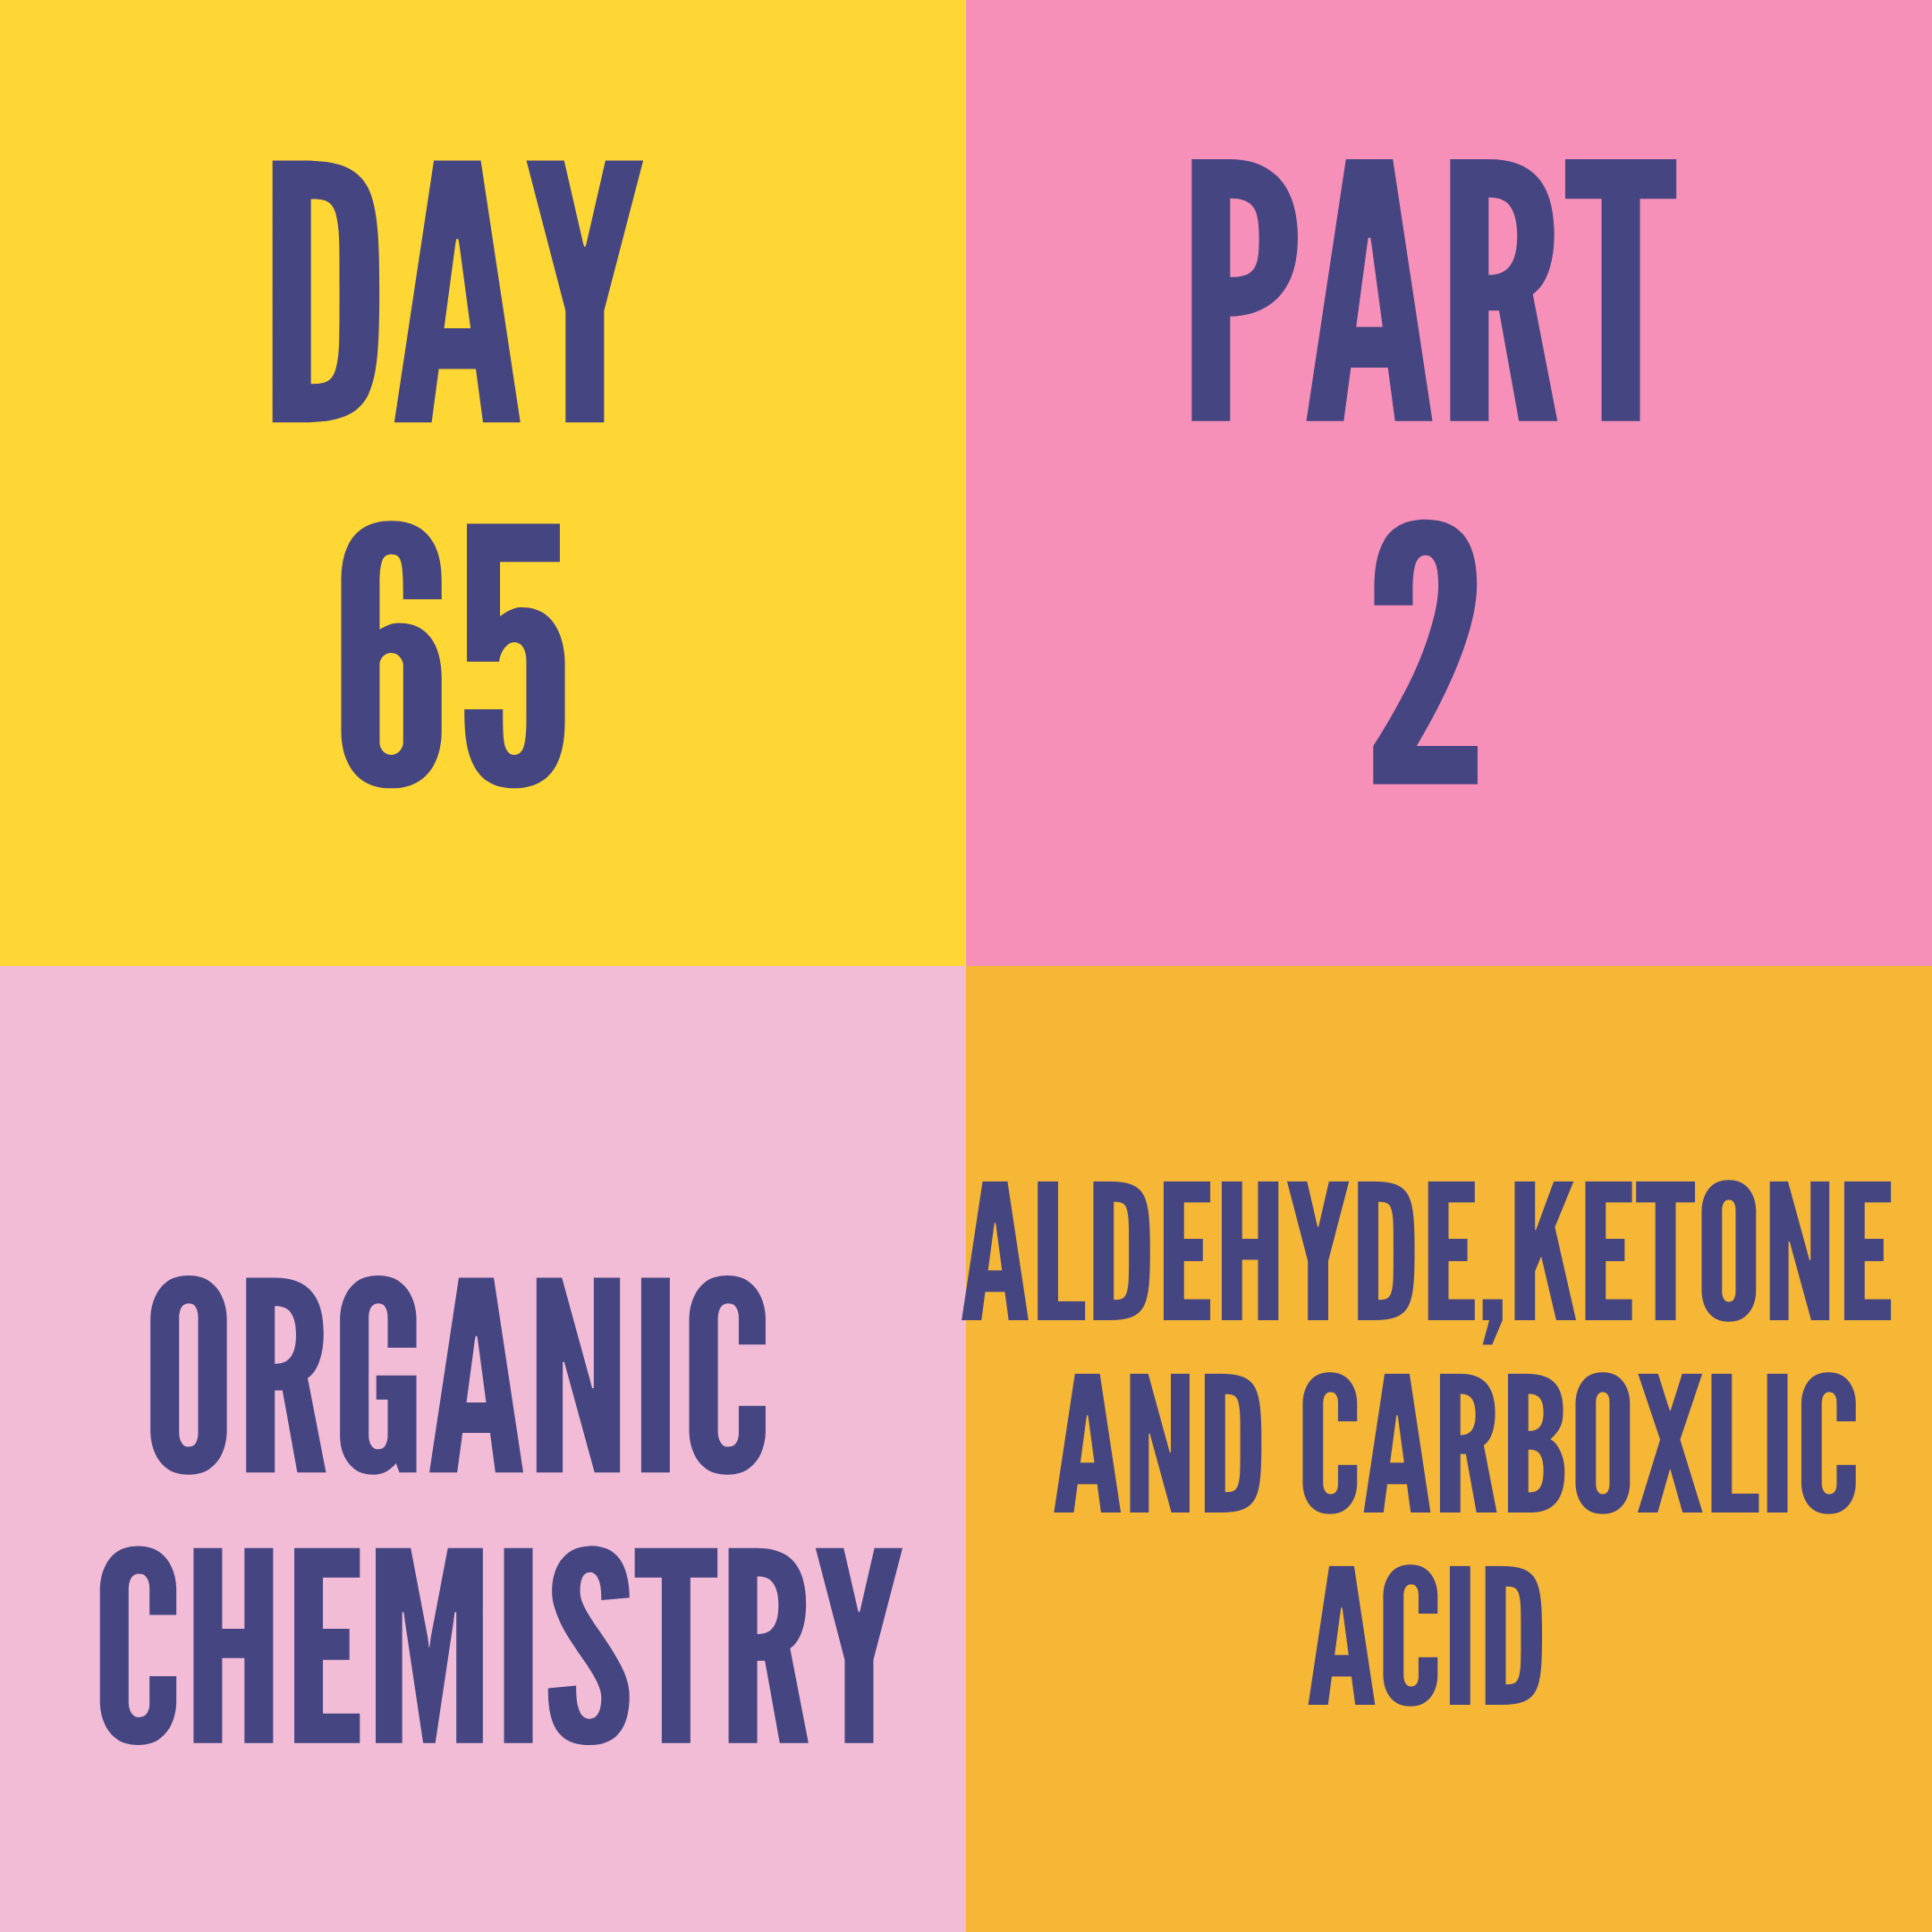 DAY-65 PART-2 ALDEHYDE,KETONE AND CARBOXLIC ACID